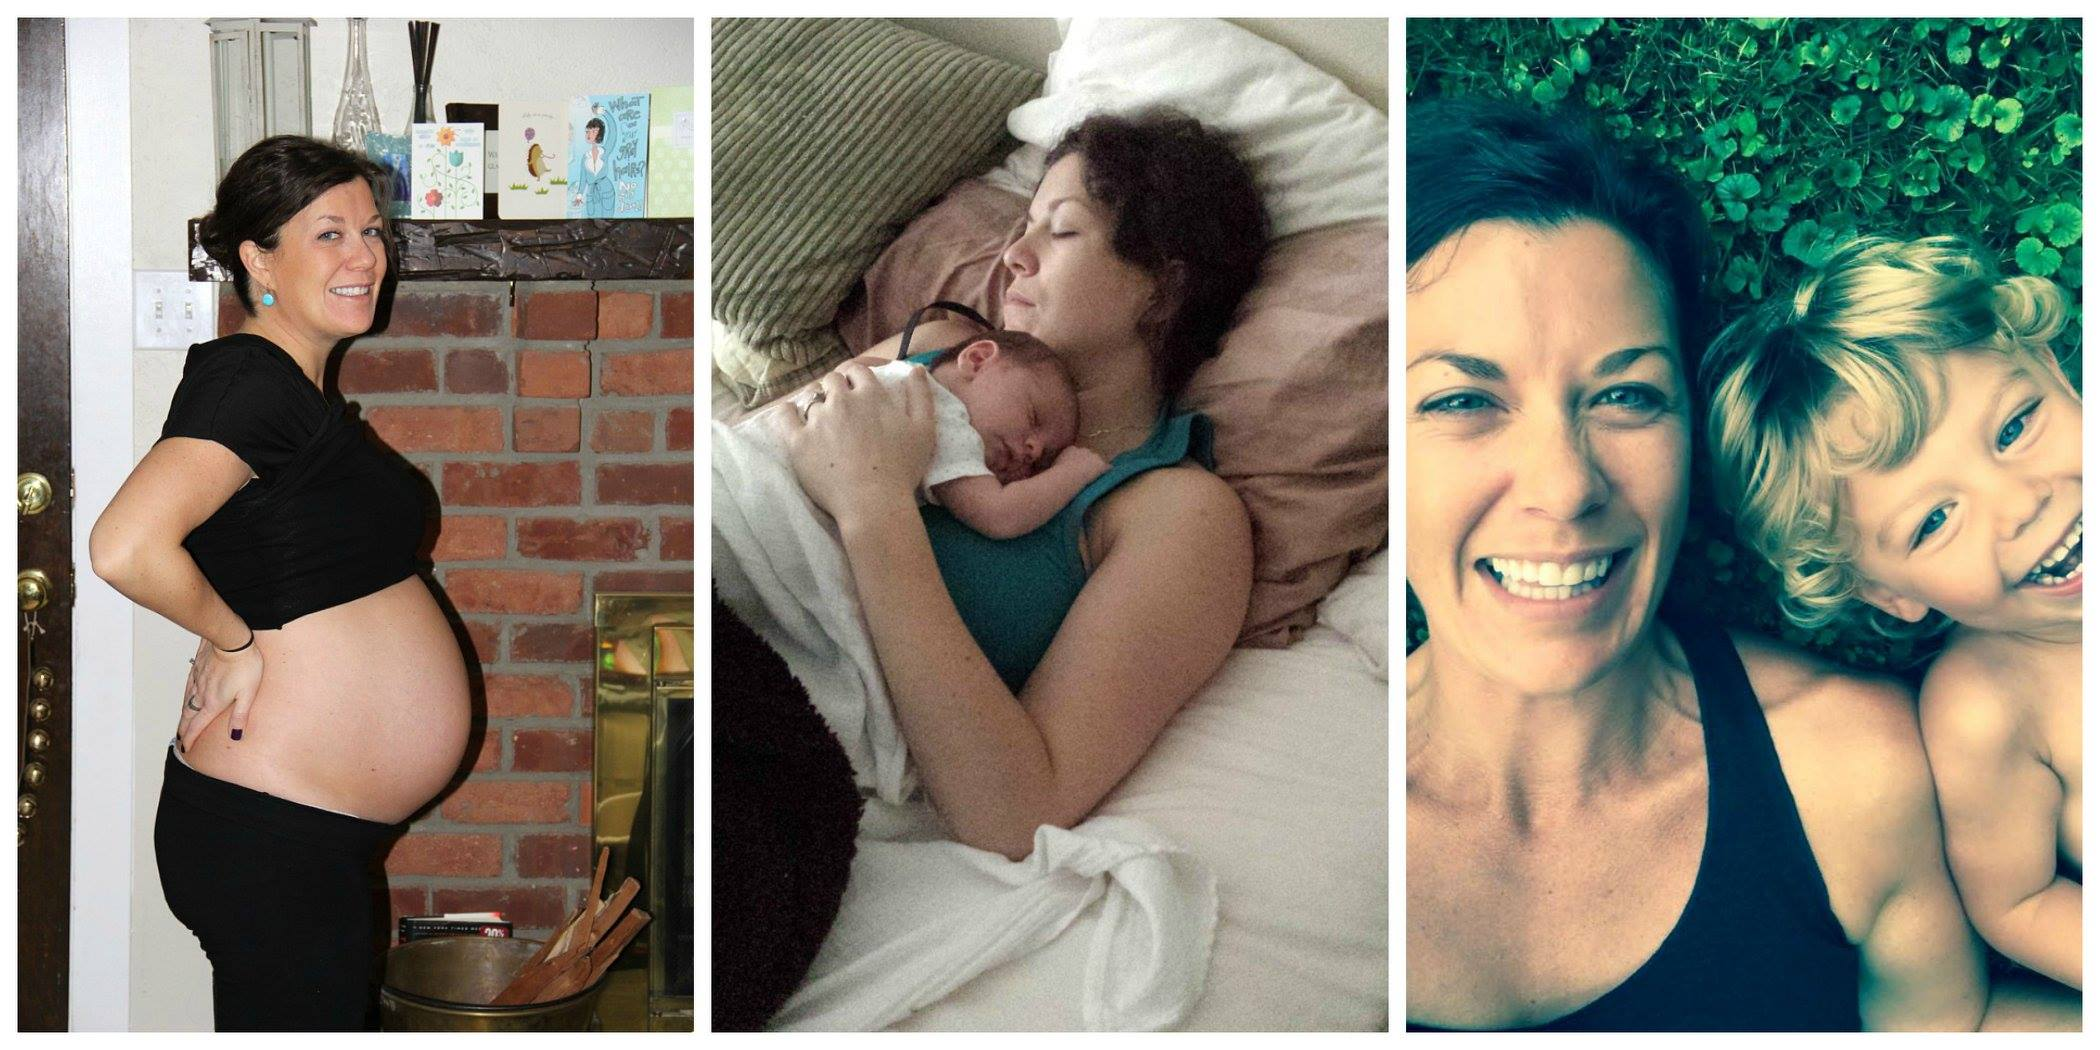 """February 14.  I gained 40 pounds during my pregnancy. You won't find many pictures of me during this time, or even in the months that followed. I was filled with the fear of """"letting go"""" and allowing my body do what it needed to do in order to accommodate a growing baby. Instead of embracing the miracle that IS pregnancy, I found myself thinking about how I didn't have control, fear that I would never find my way back into pre-pregnancy clothes, or that I would ever have the resources I needed to bounce back postpartum.😐  Funny how everything changes the moment yout hold that baby in your arms.<3  Do you know what I've learned? That a woman's body has the ability to create, grow and sustain LIFE, and that is a miracle. I have learned that a tiny person can inspire us to be a better version of ourselves than we ever thought possible. I have learned that inward strength is what radiates outward, and that as a WHOLE defines who we are. That with support, we can achieve ANYTHING we set our minds to.😎  As for those pre-pregnancy pants? I got back into them. And, I'm stronger in body and in mind than I ever was pre-baby. Should we be blessed with another pregnancy, I will embrace my body as it grows and changes, because I KNOW that I have a resources that I need to nail my goals, and fuel me both inside and out. And I will document the shit out of the journey!🙌🏻  Those home workout programs and that shake that I drink on the daily? They work y'all.🤘🏼  You know where to find me when you're ready."""